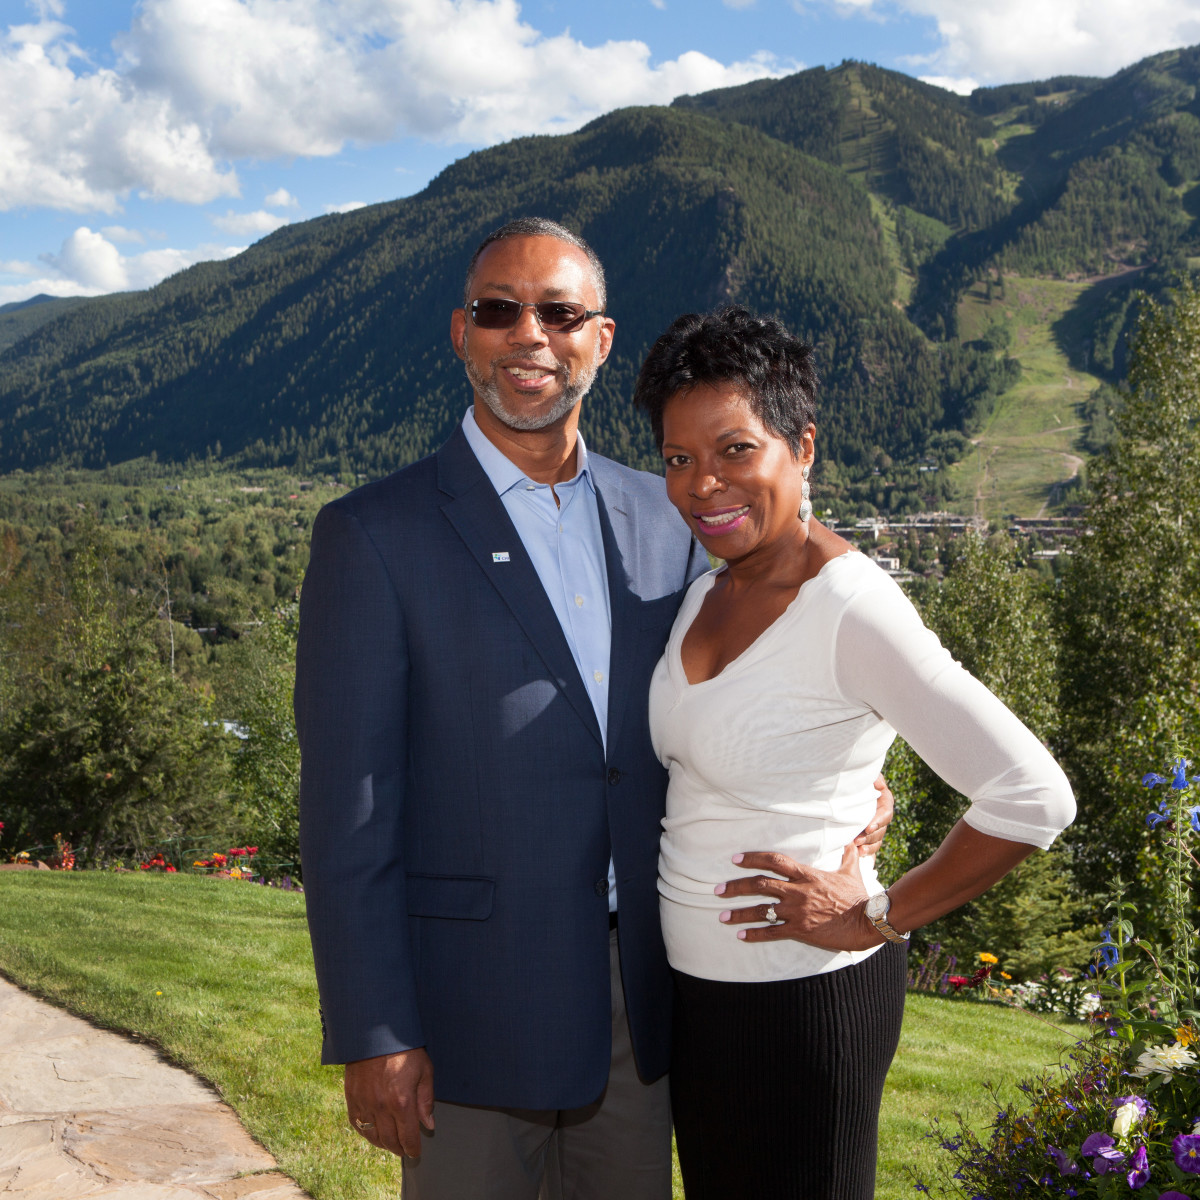 Houston, St. Luke's Foundation Summer Speaker Series Aspen, August 2015, Kevin Lofton and Sabrina Shannon